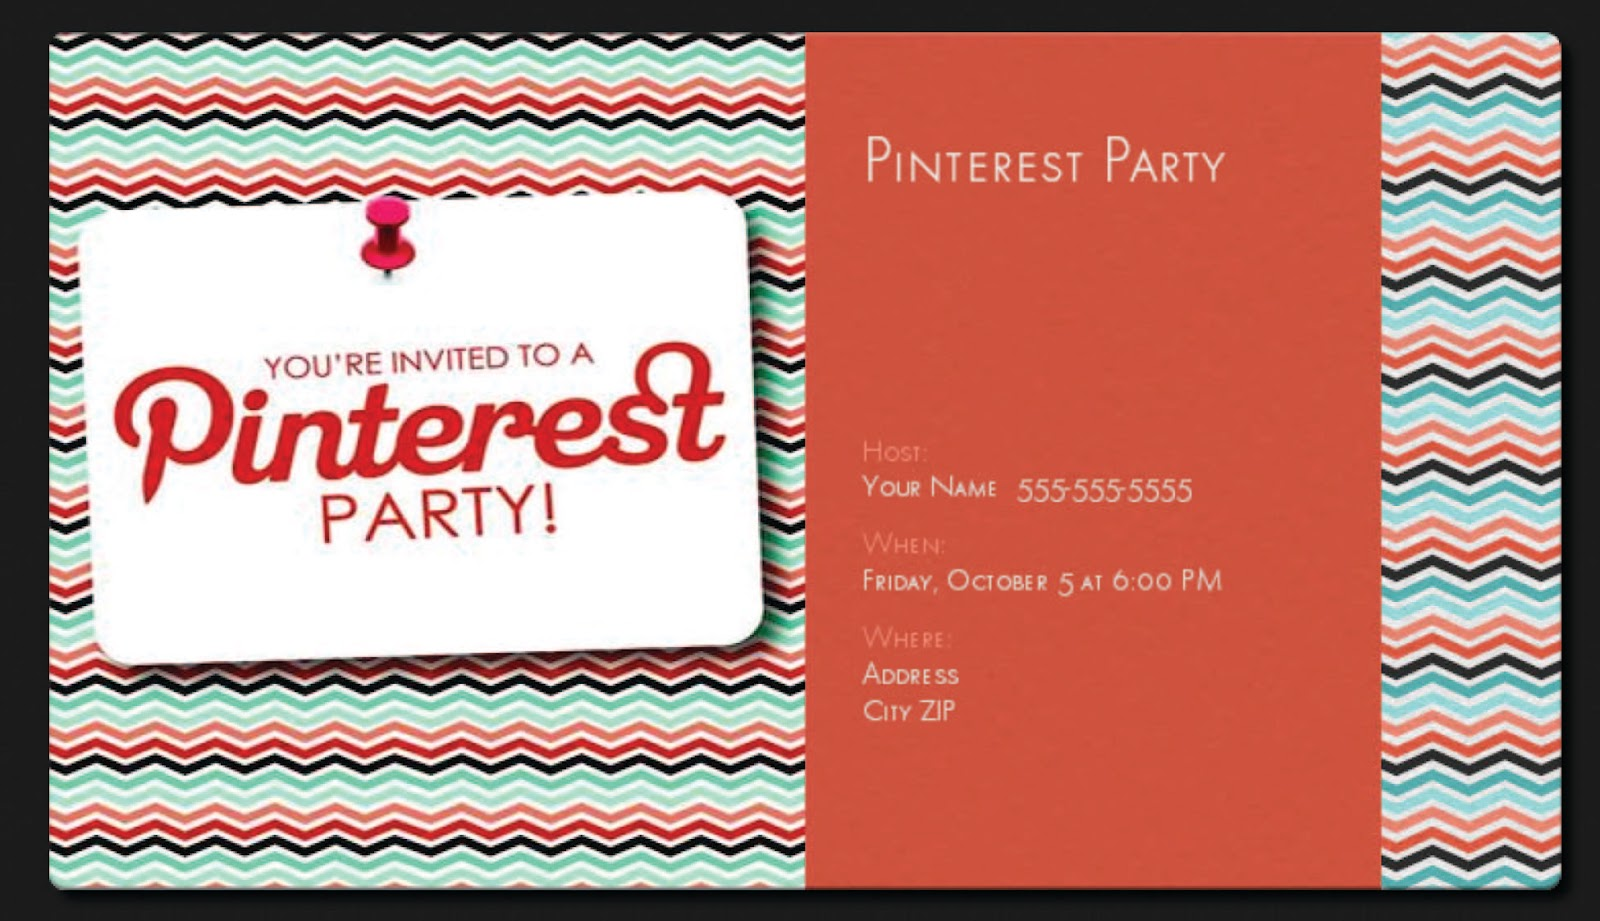 May I Propose A Postcard Custom Pinterest Party Invite Tutorial – Pinterest Party Invitations